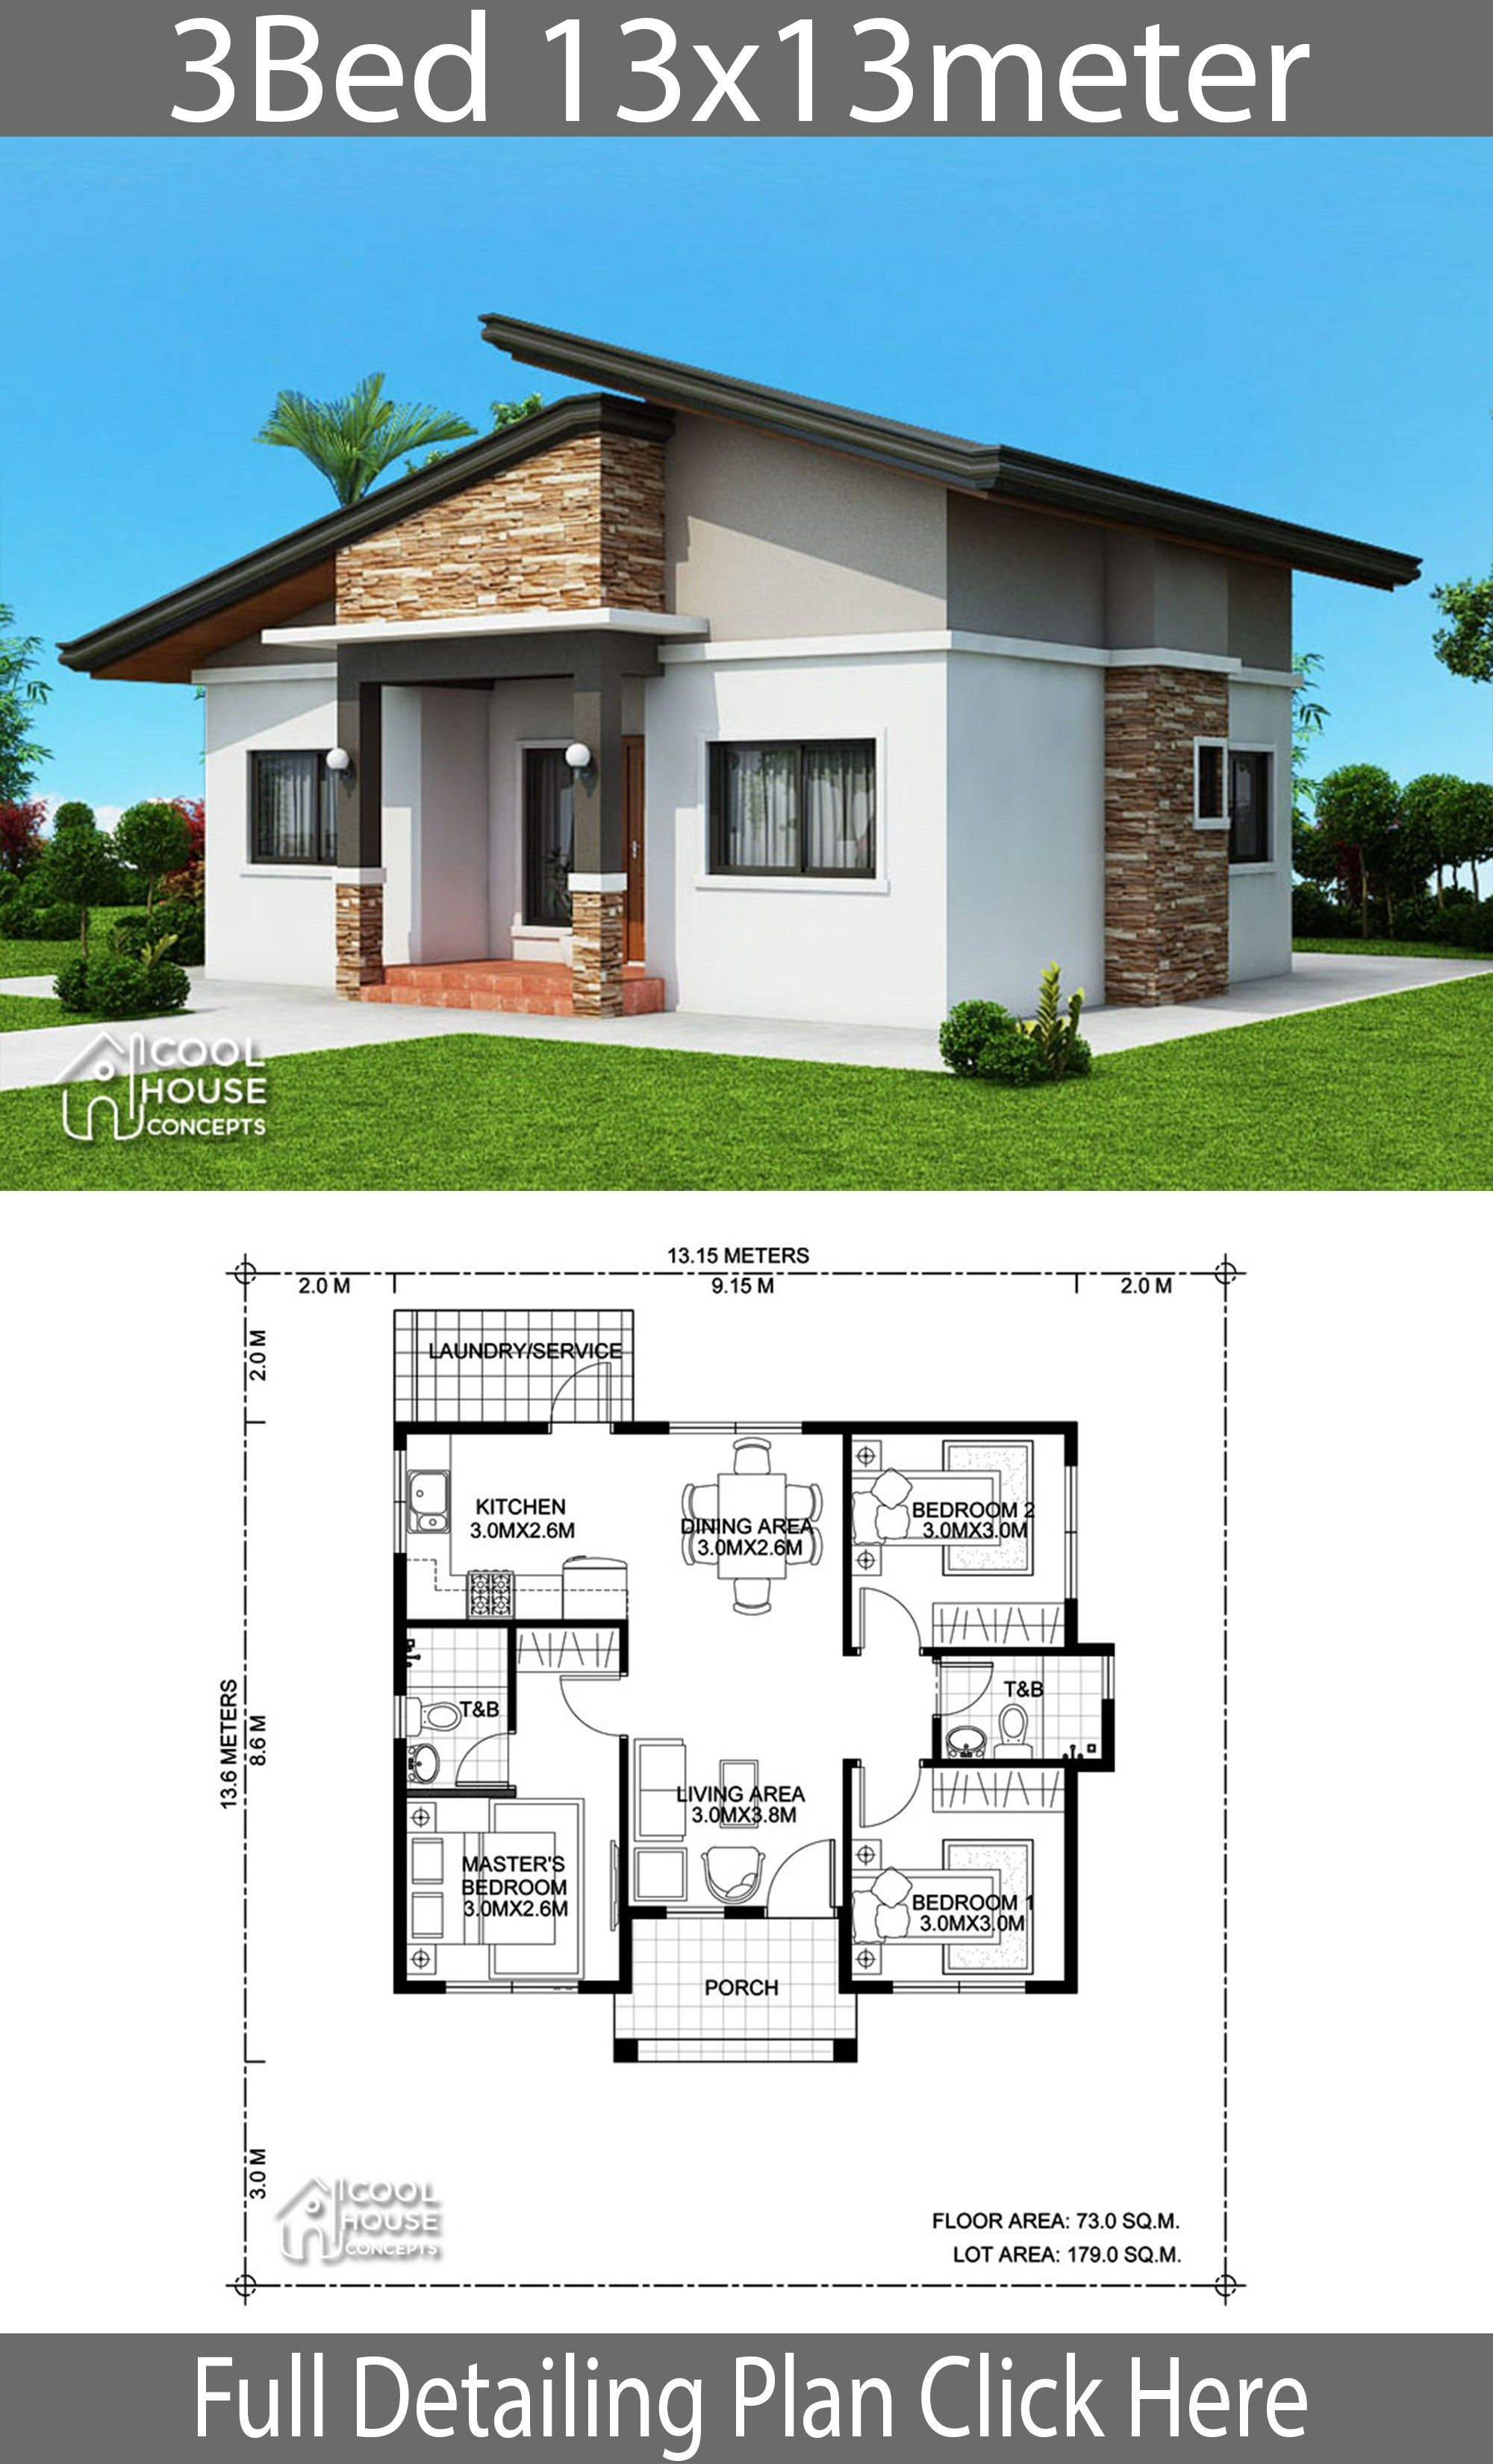 Home Design Plan 13x13m With 3 Bedrooms Home Design With Plan House Construction Plan Bungalow House Plans Architectural House Plans